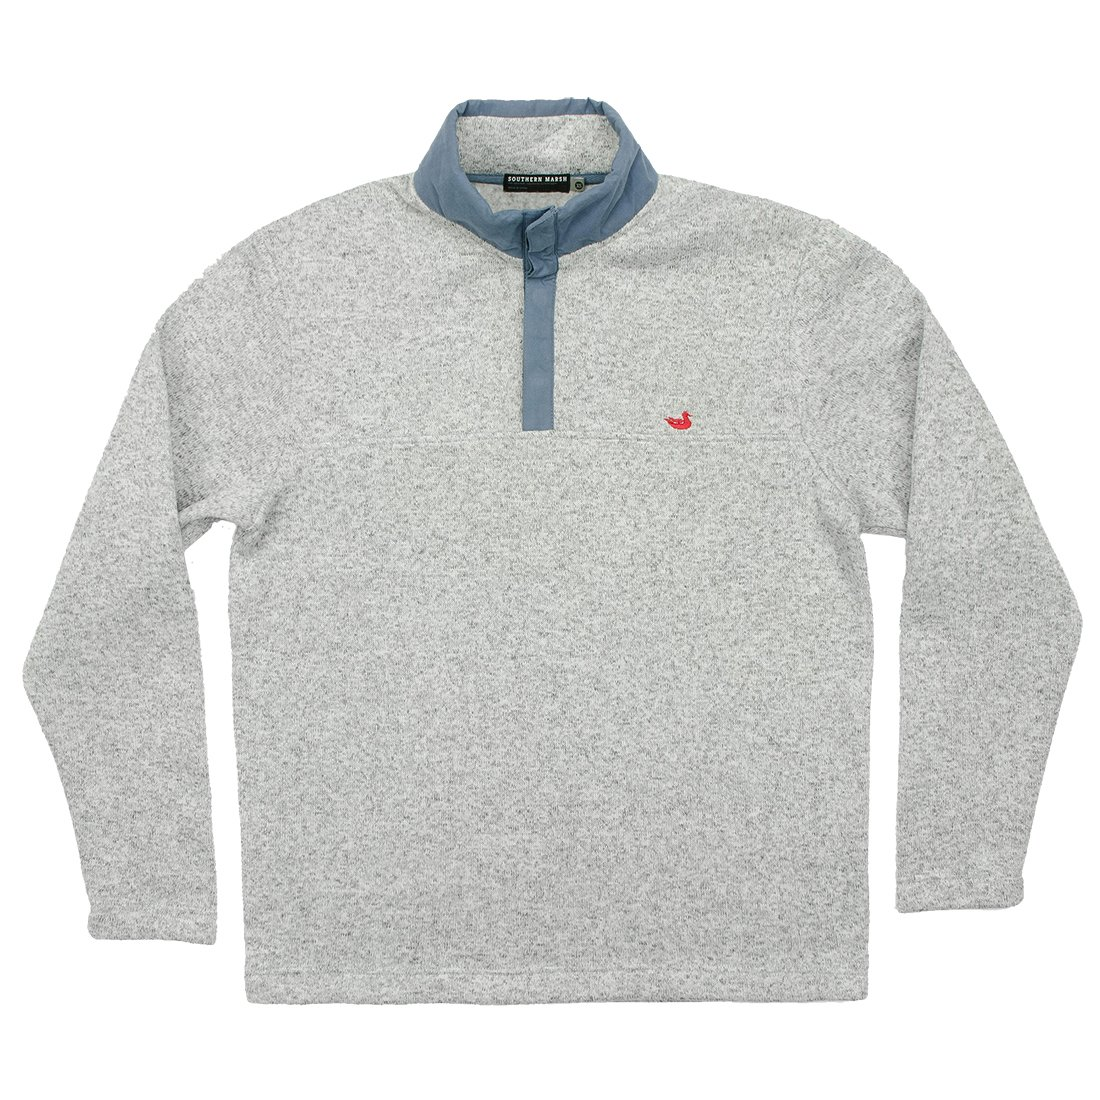 Southern Marsh Woodford Snap Pullover-Avalanche Gray-large